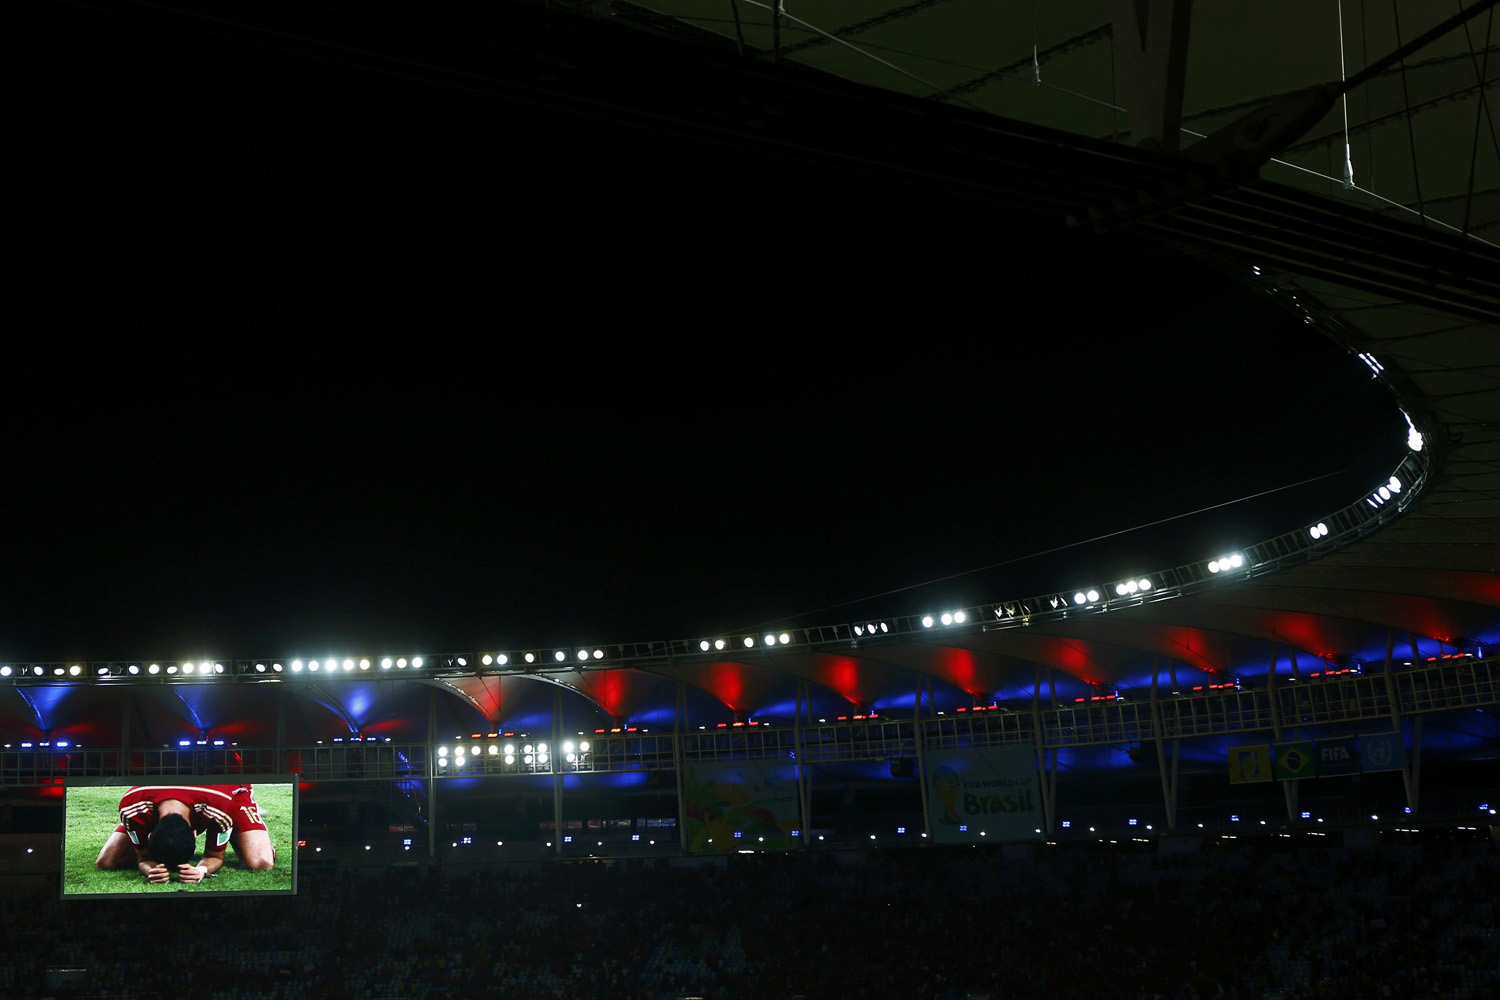 Jun. 18, 2014. Match highlights are screened after the 2014 World Cup Group B soccer match between Spain and Chile at the Maracana stadium in Rio de Janeiro.